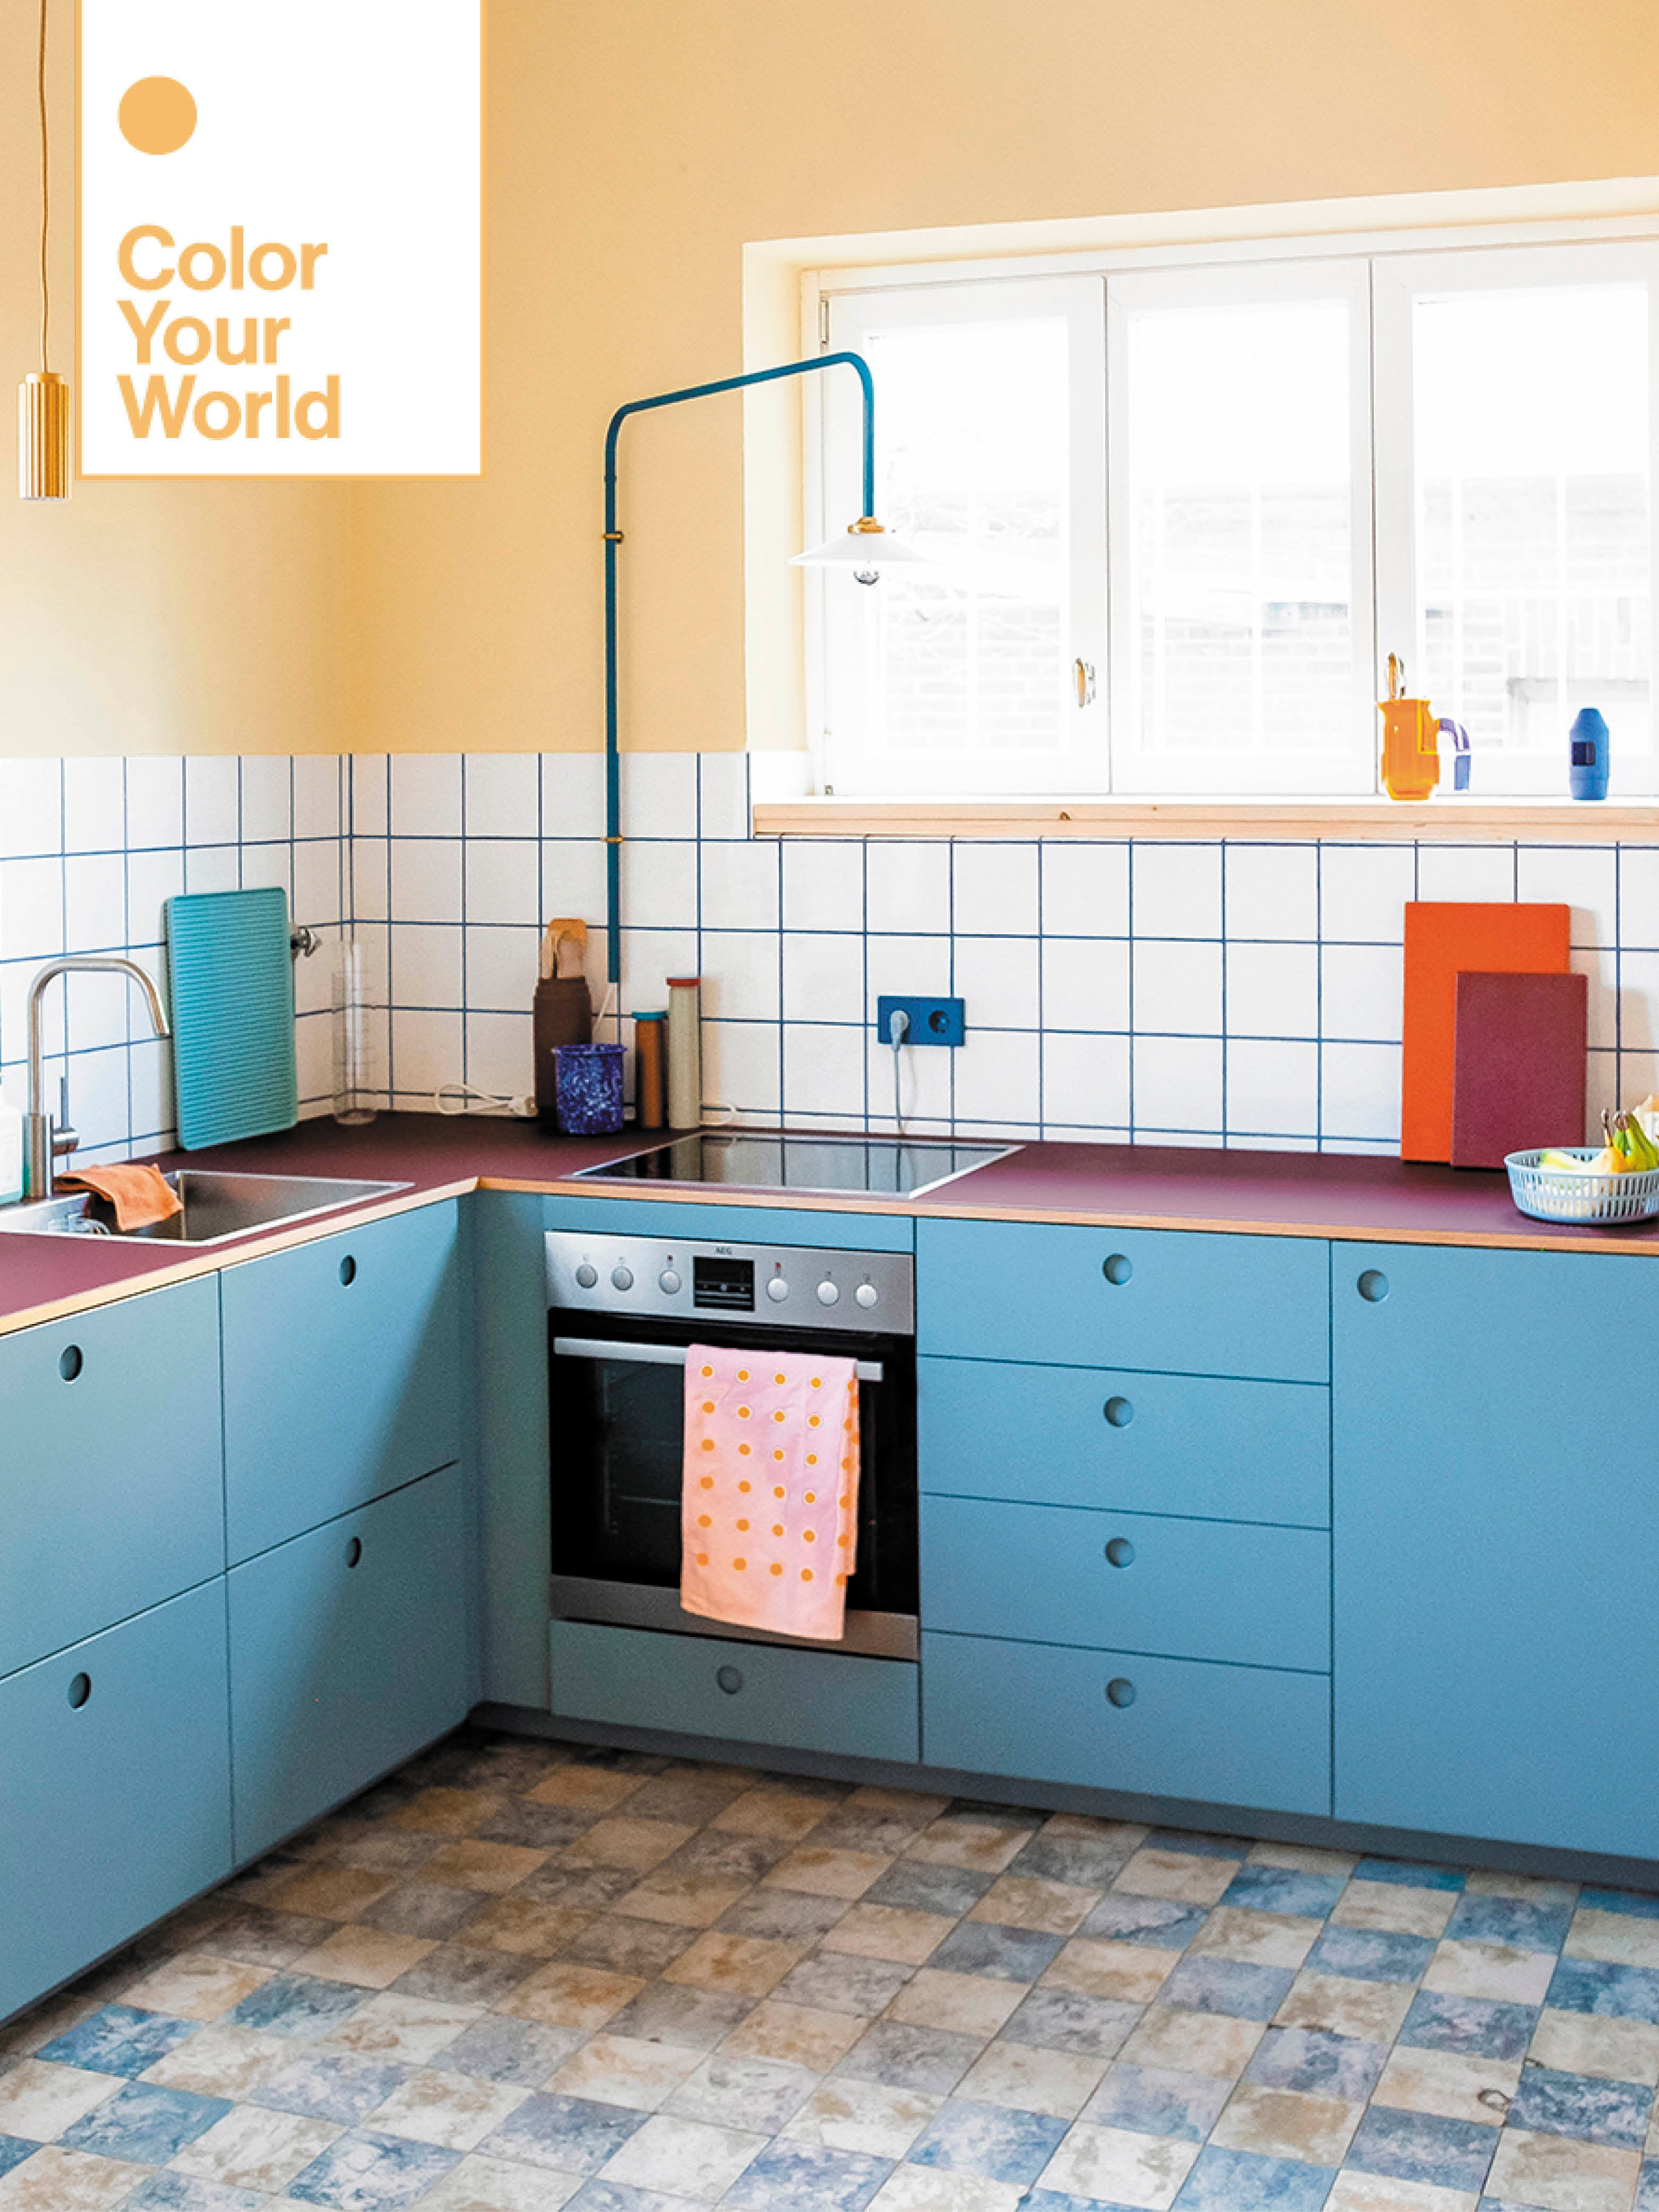 00-FEATURE-Swantje-Hinrichsen-Home-Tour-domino